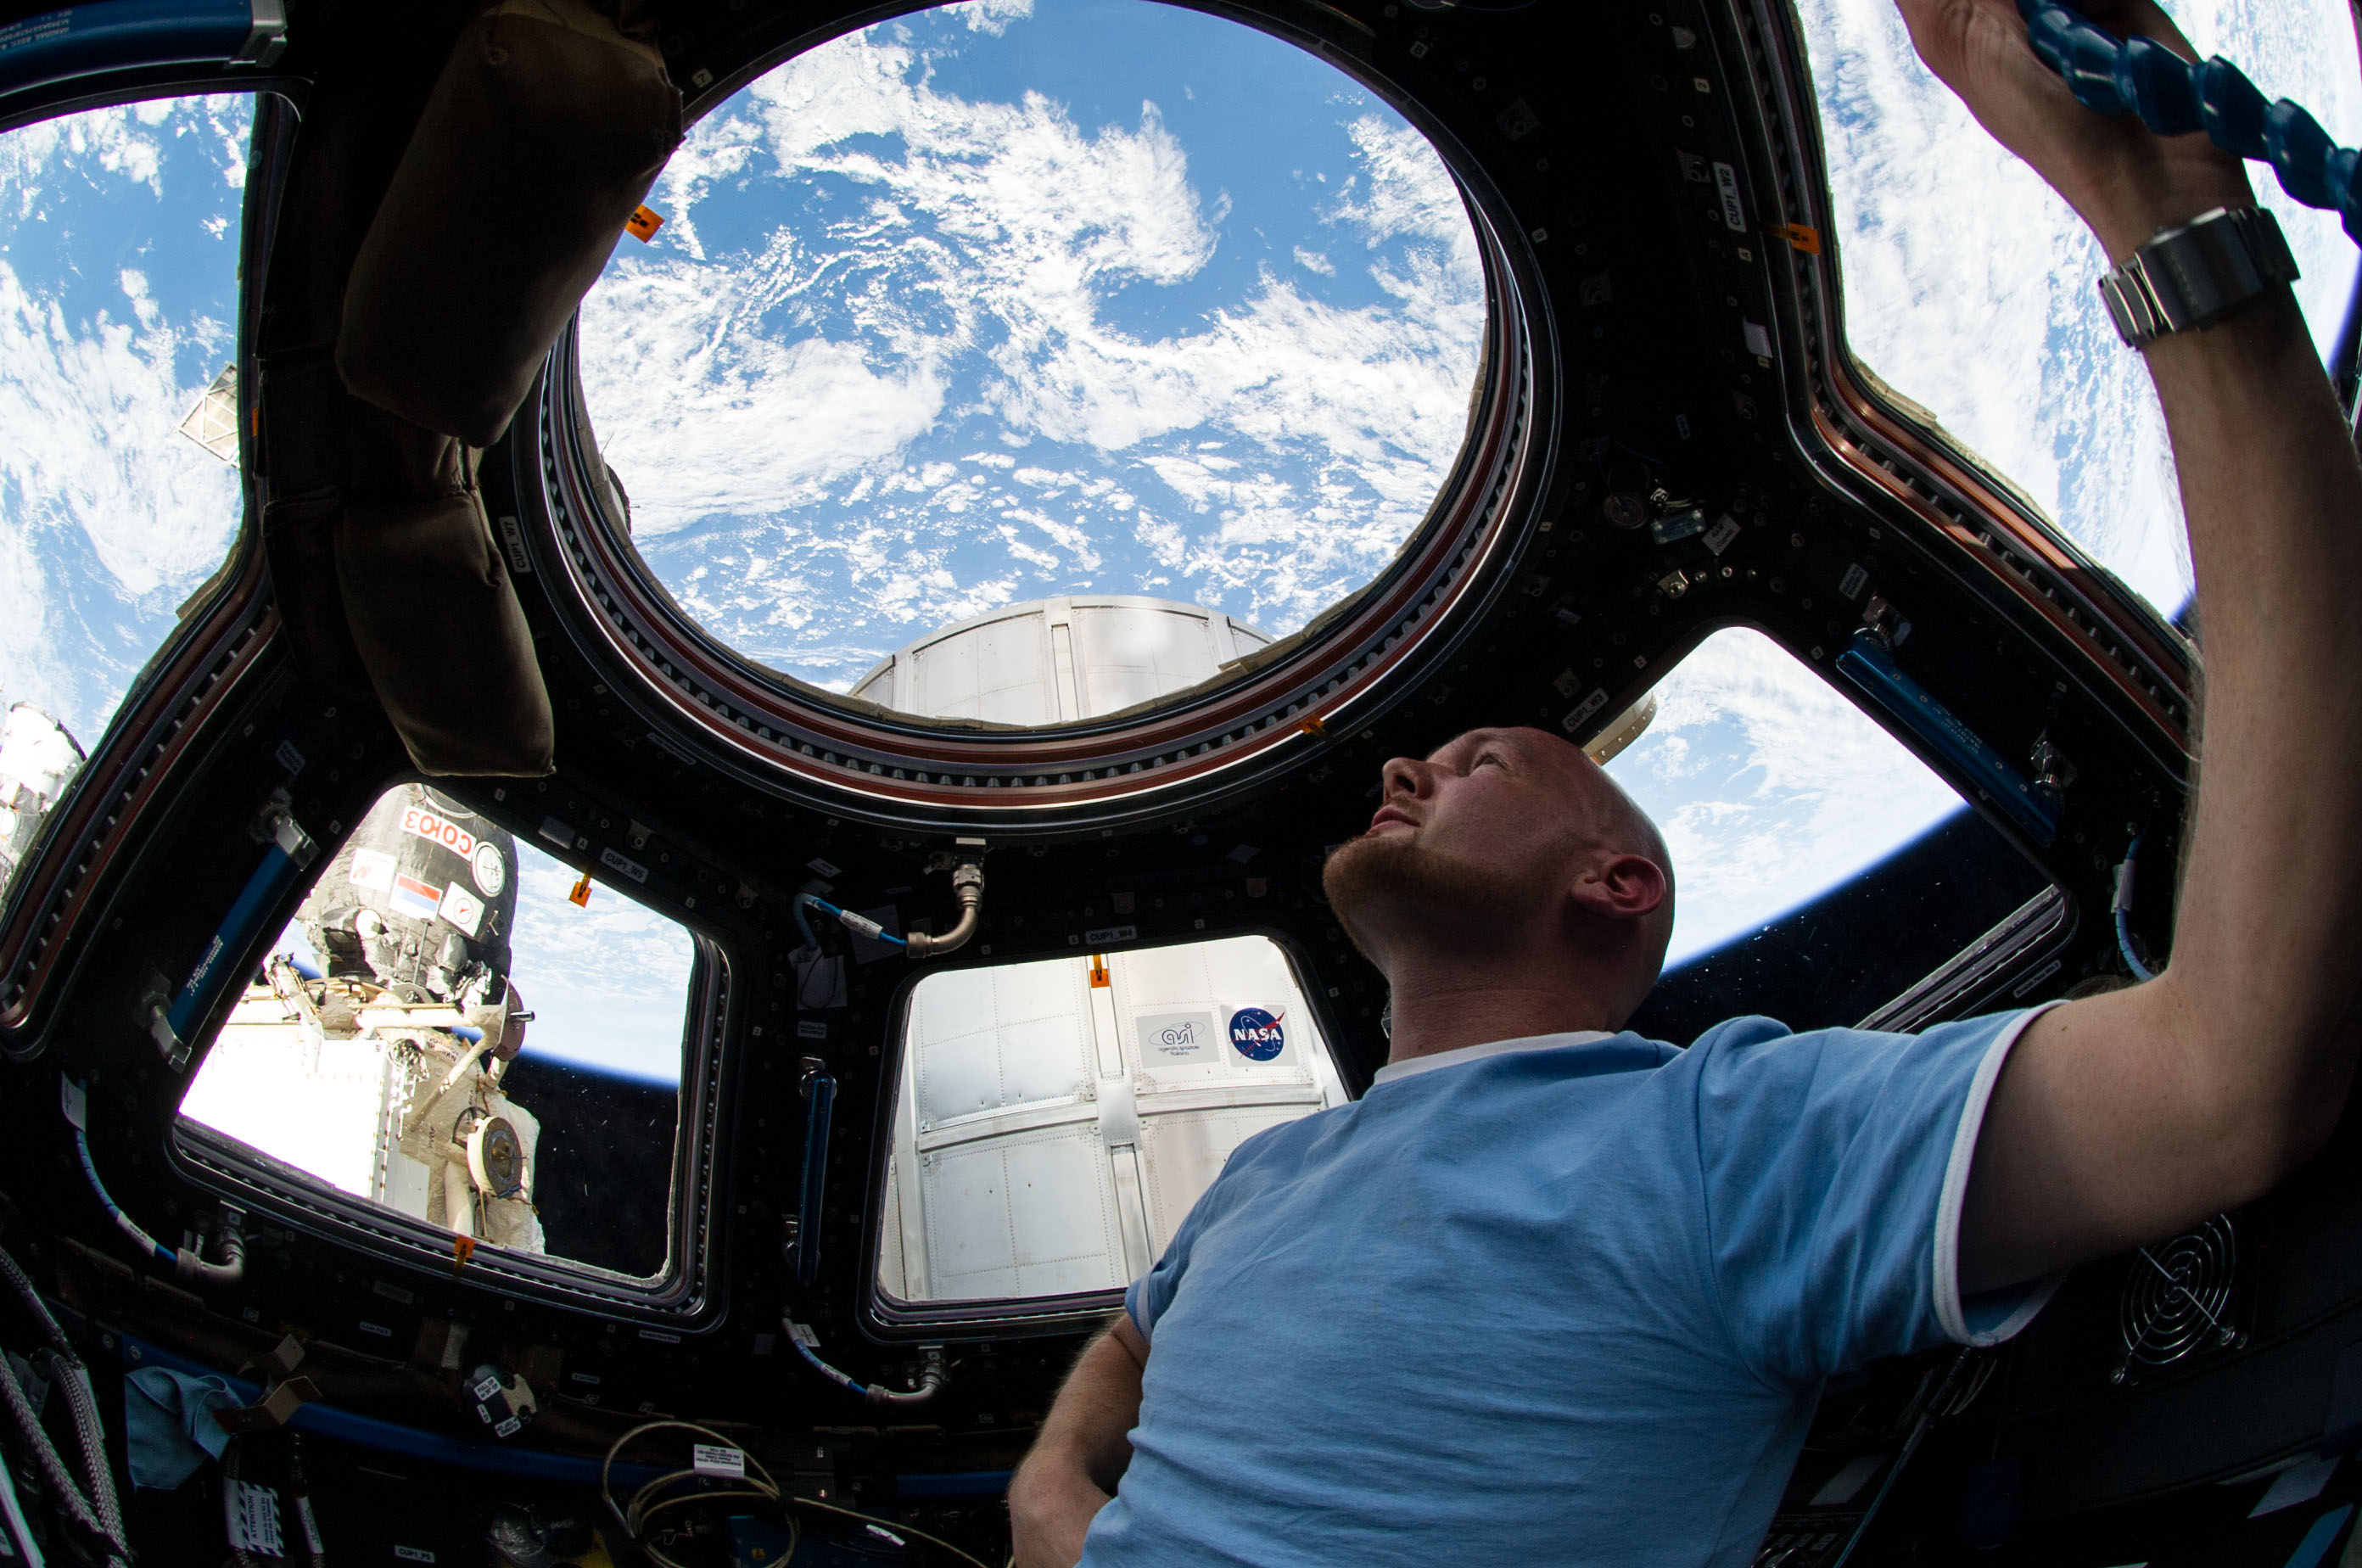 Astronaut Alexander Gerst enjoys the view of Earth from the windows in the Cupola of the International Space Station. A blue and white part of Earth is visible through the windows.